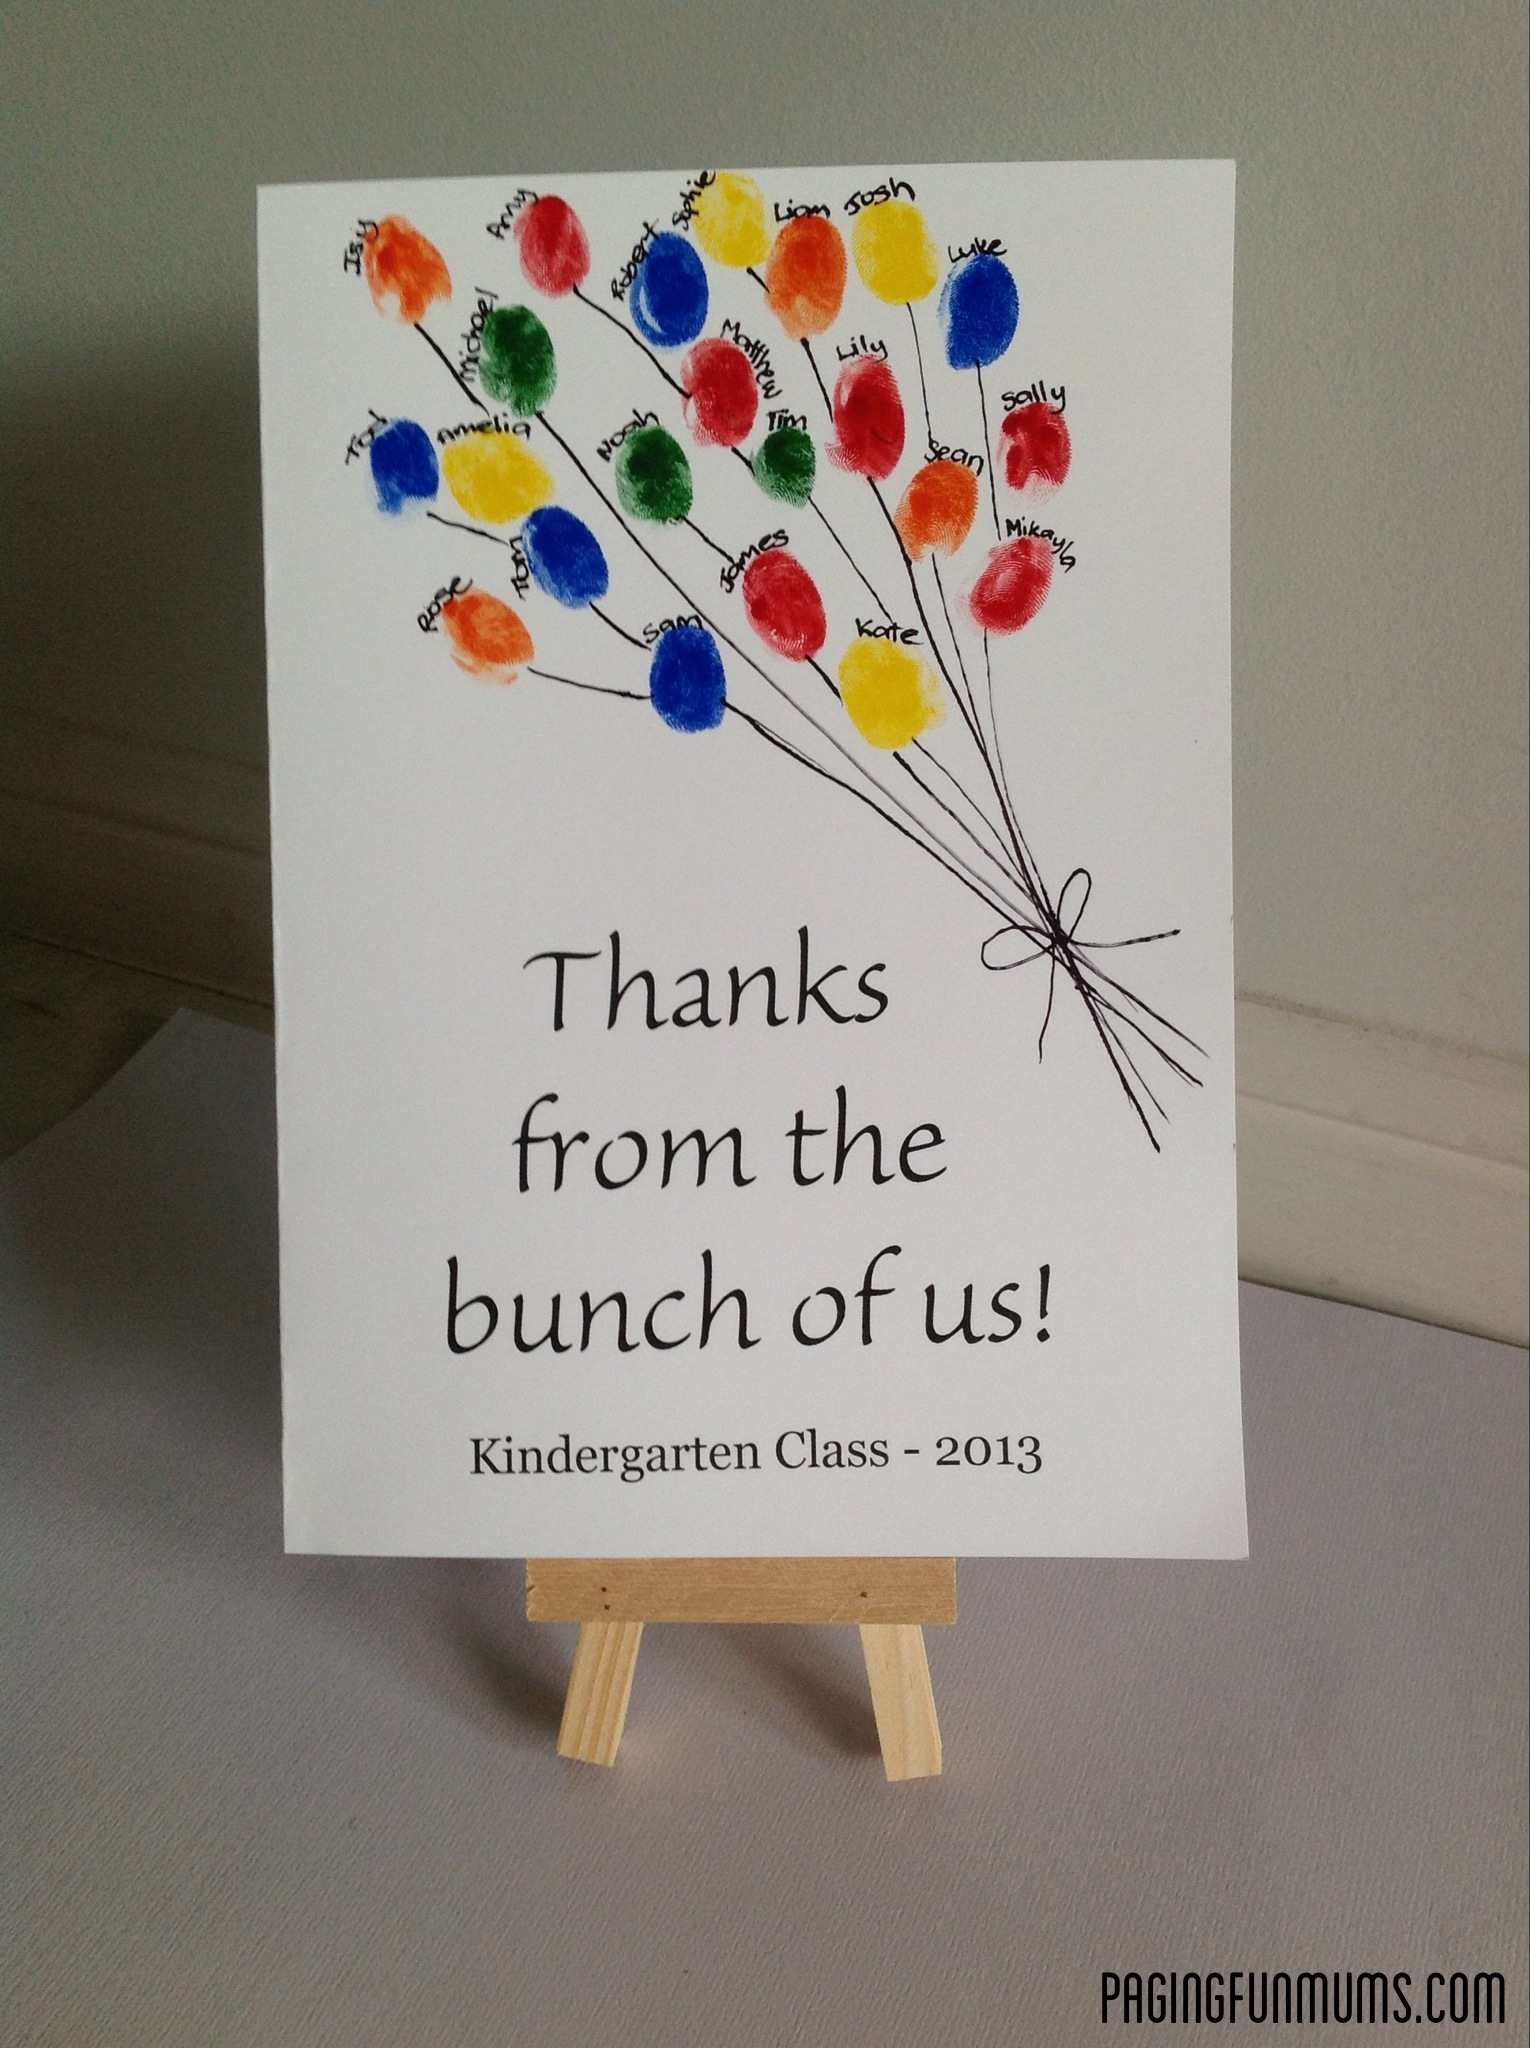 Teacher appreciation card from class louise paging fun mums 20130503 100351g m4hsunfo